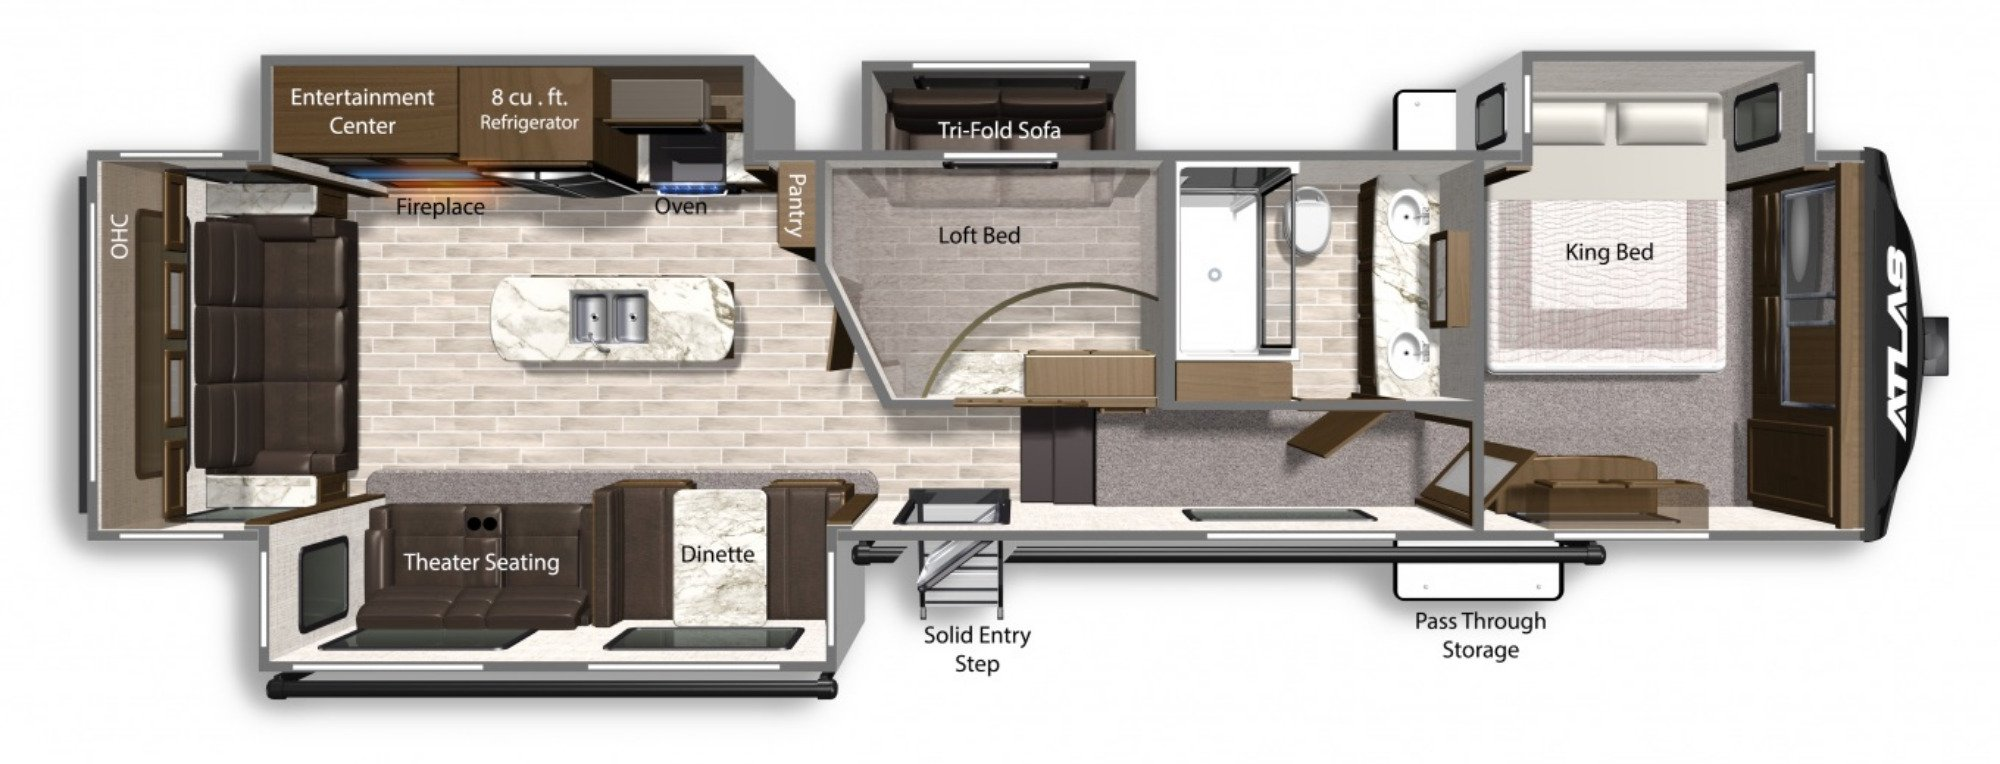 View Floor Plan for 2021 DUTCHMEN ATLAS 3552MBKB